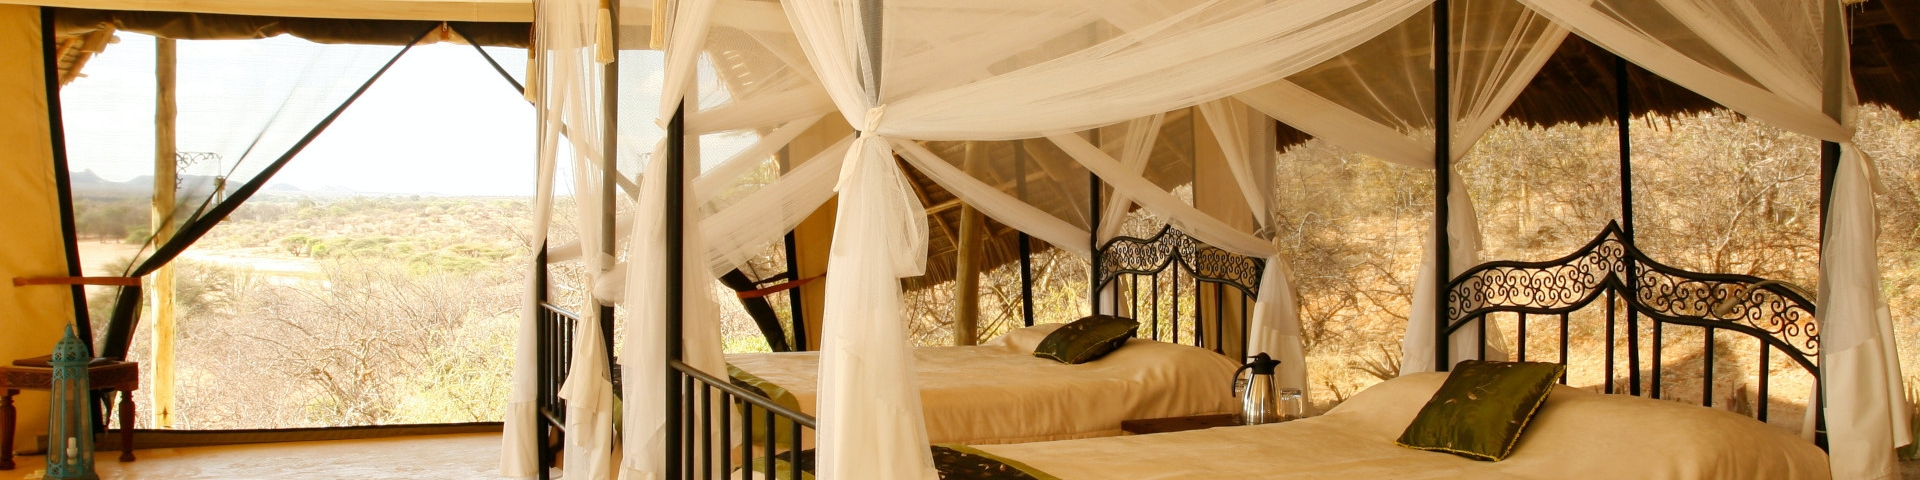 Accommodation in Samburu National Reserve Twin Room with a View